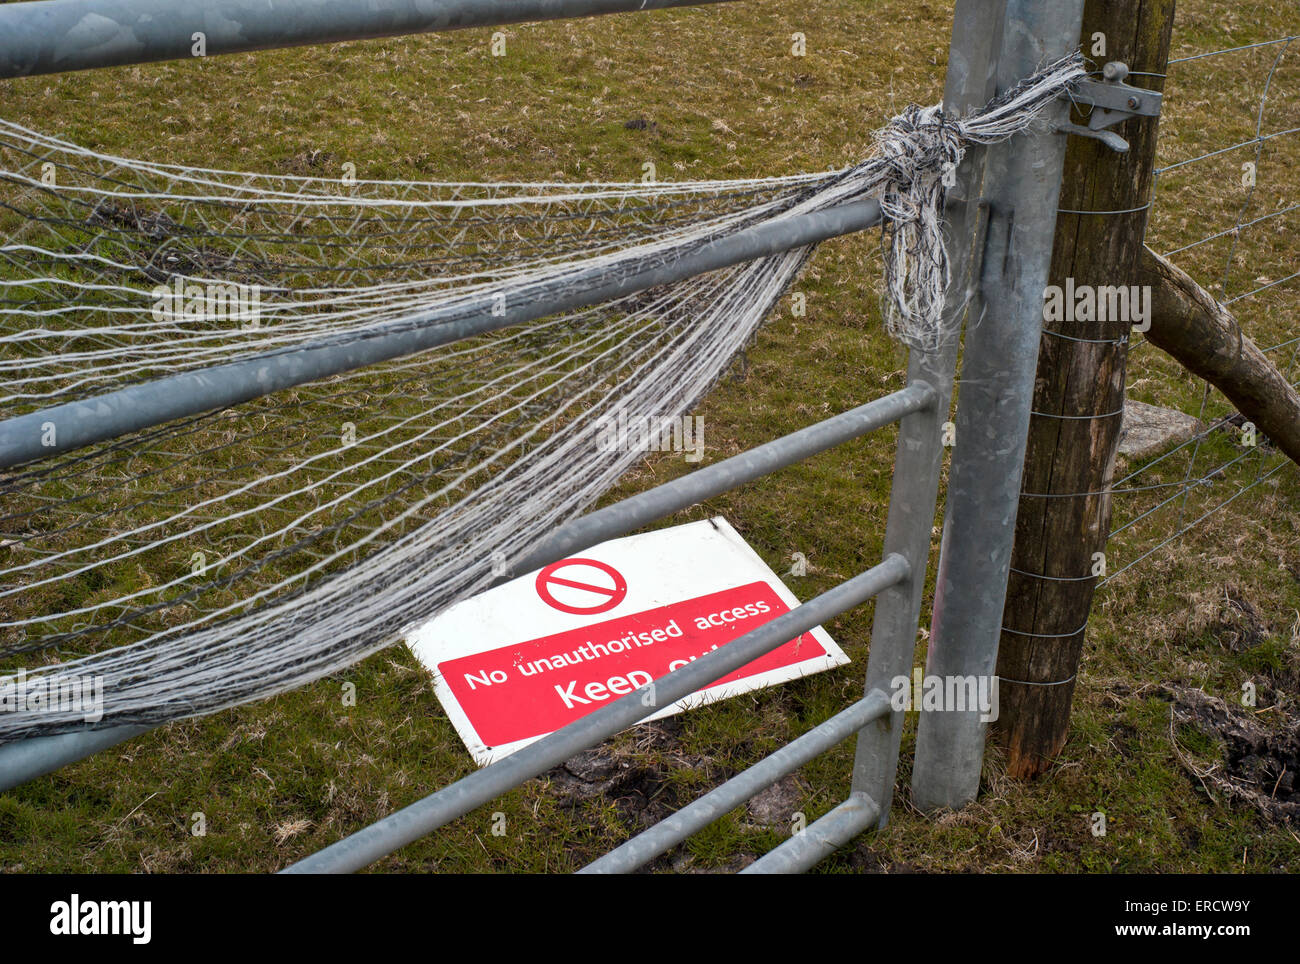 ''No unauthorized access Keep out'' sign by metal gate on moorland - Stock Image